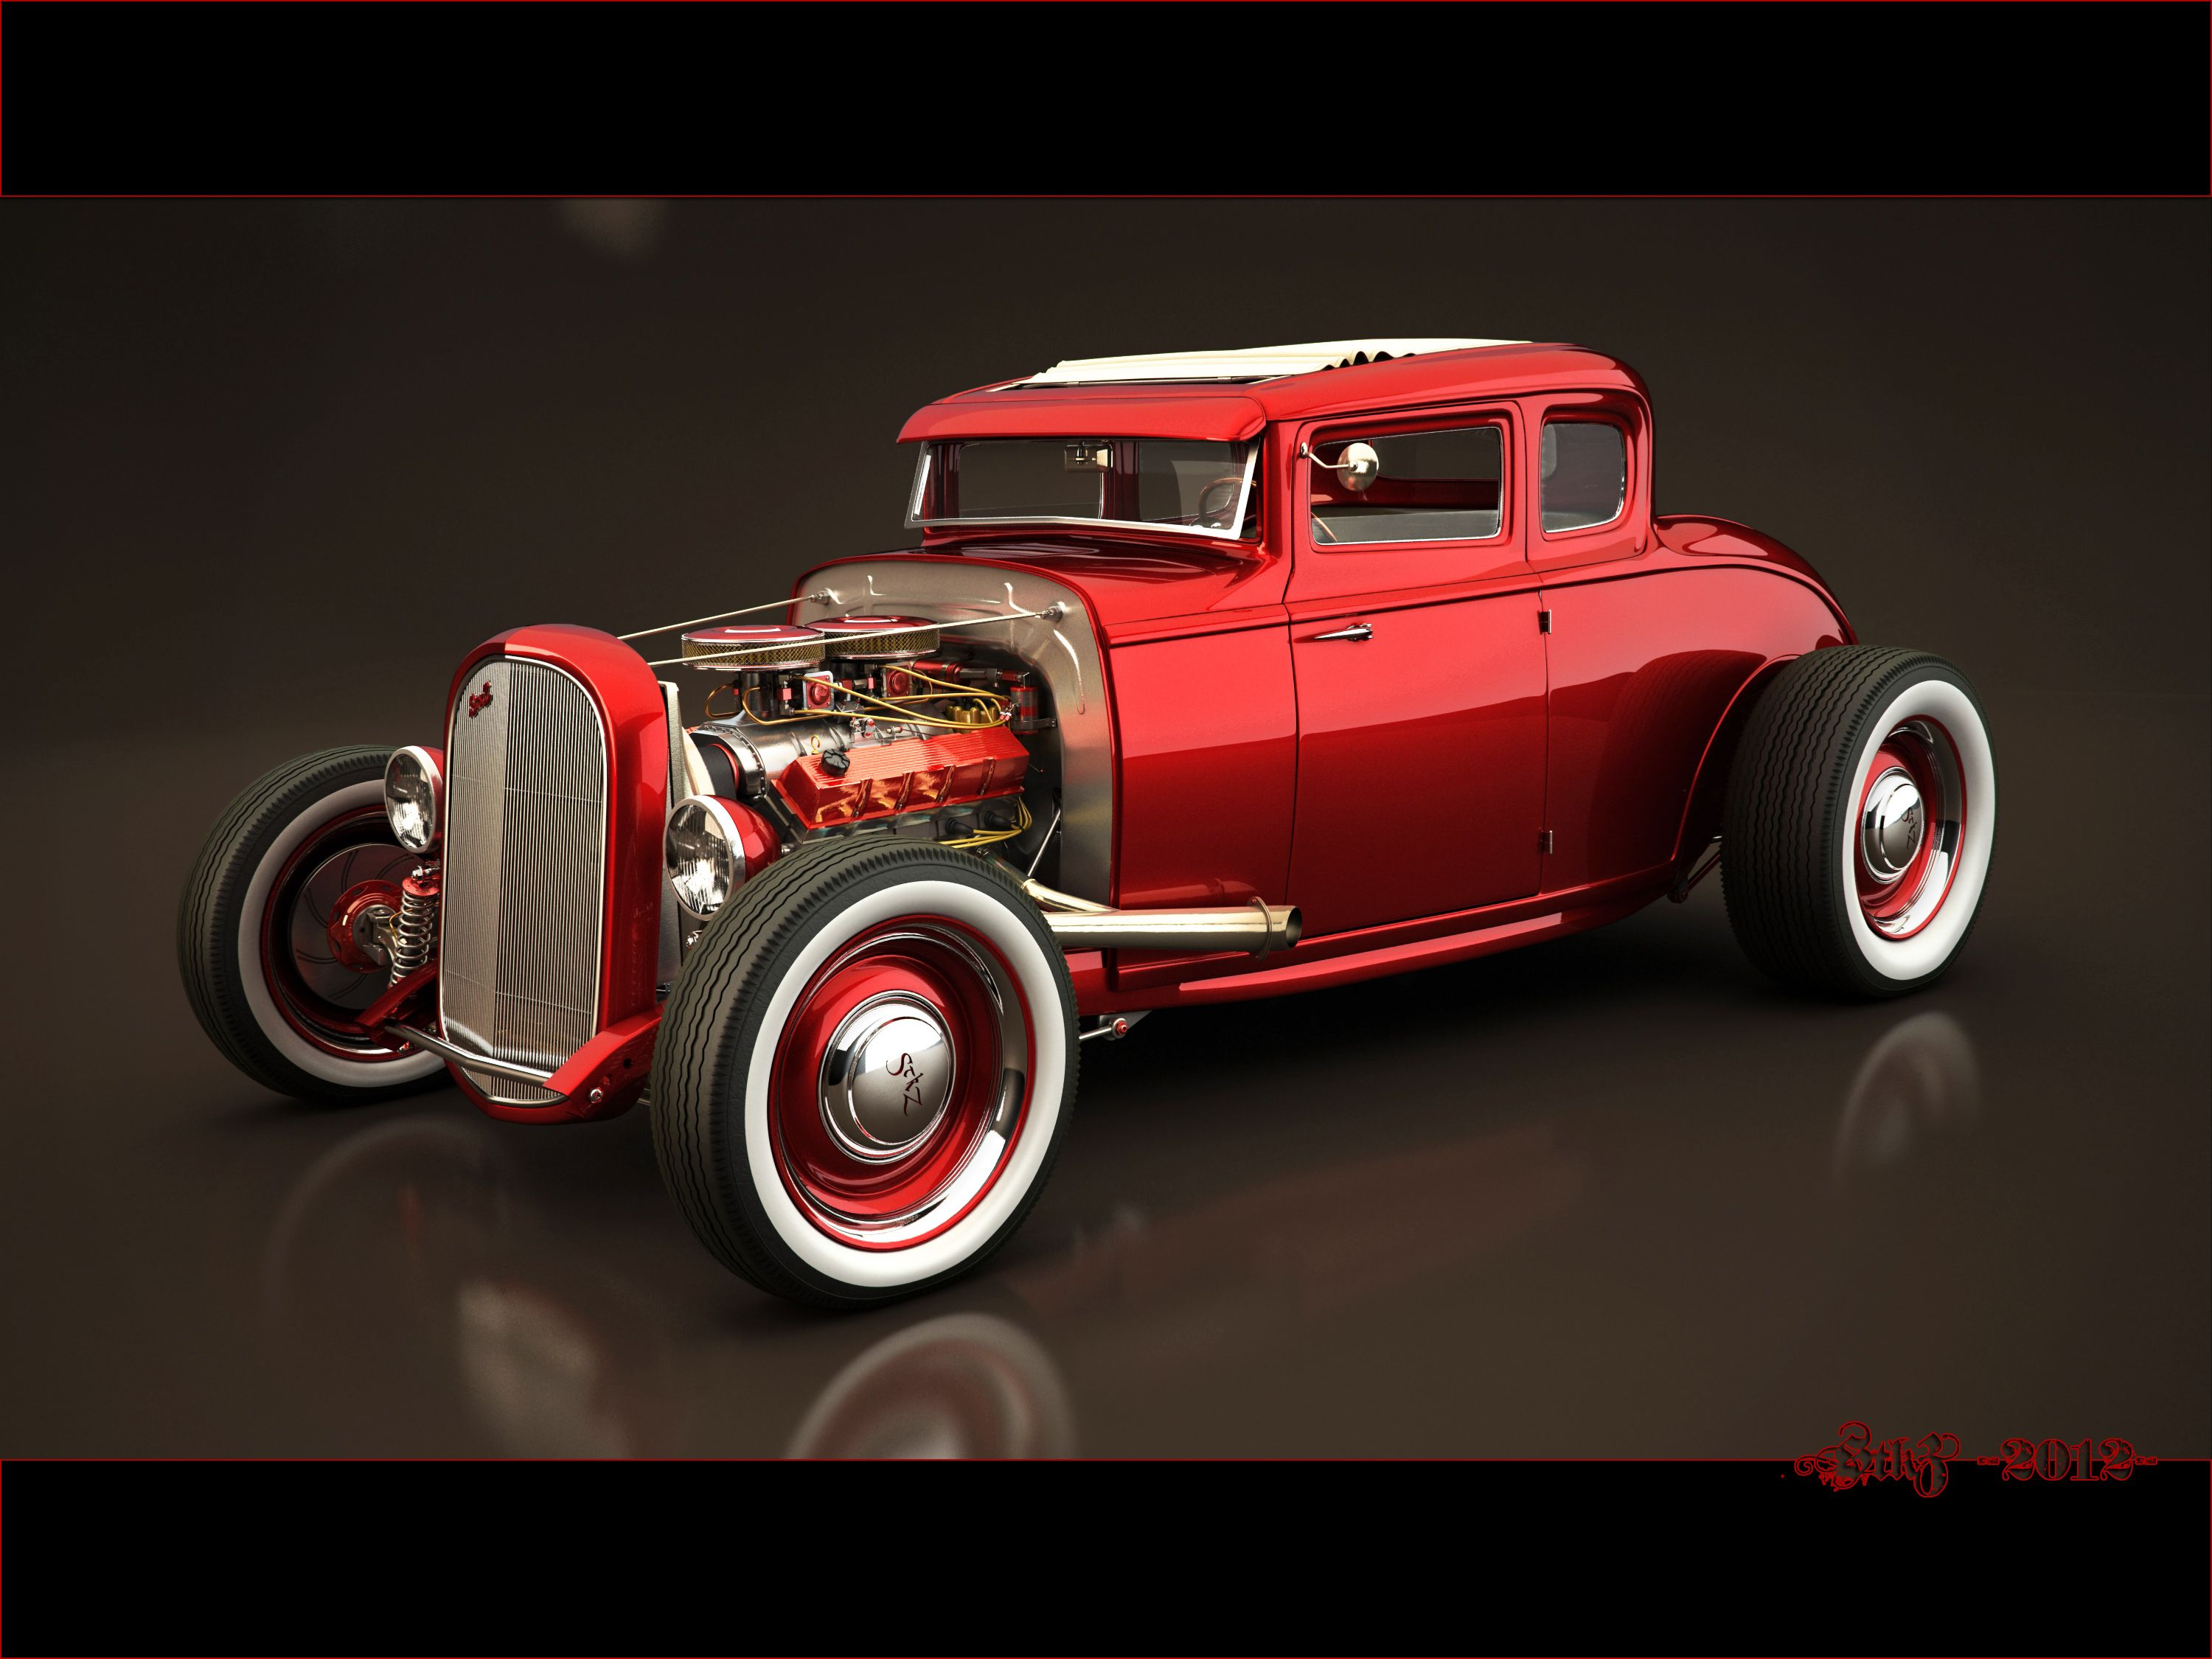 Hot Rod Wallpapers - A Link to the Past - MuscleDrive